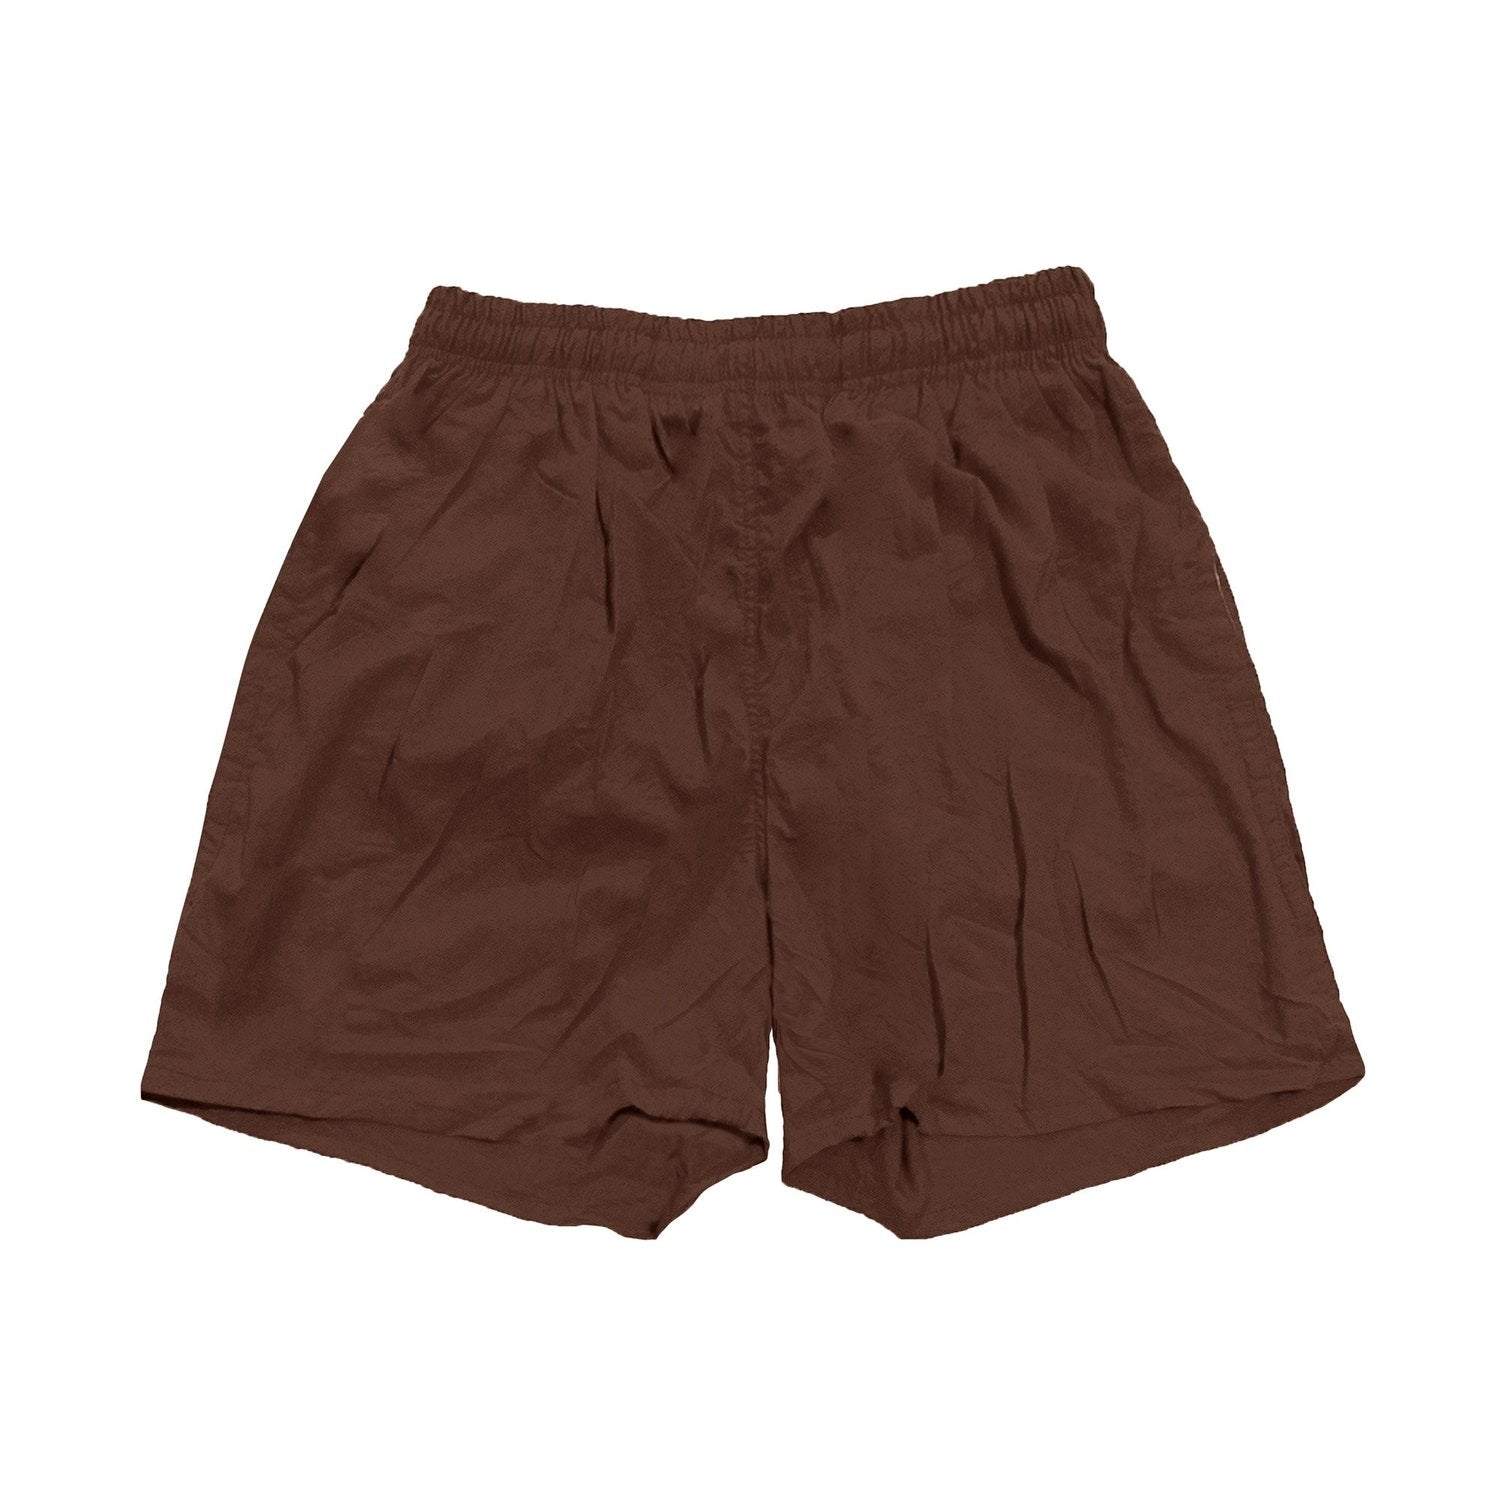 Travis Scott x McDonald's Illustration Brown Nylon Shorts